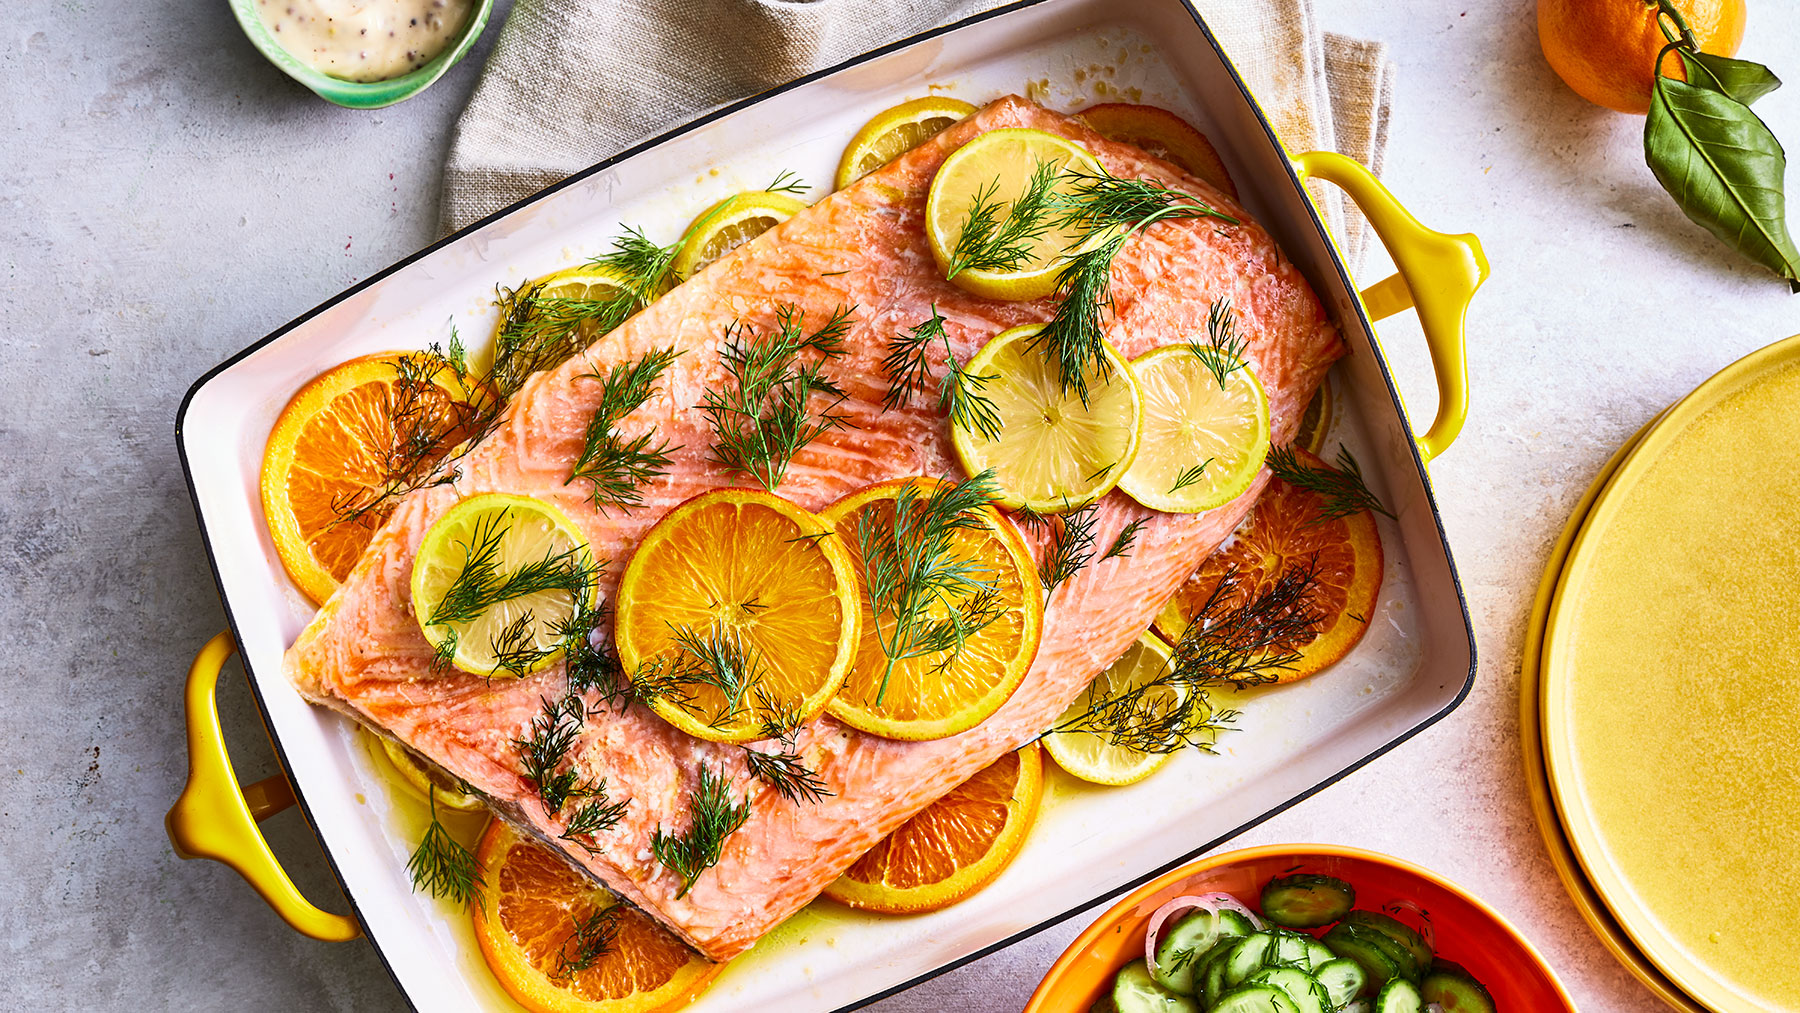 Citrus Recipes: Slow-Roasted Citrus Salmon